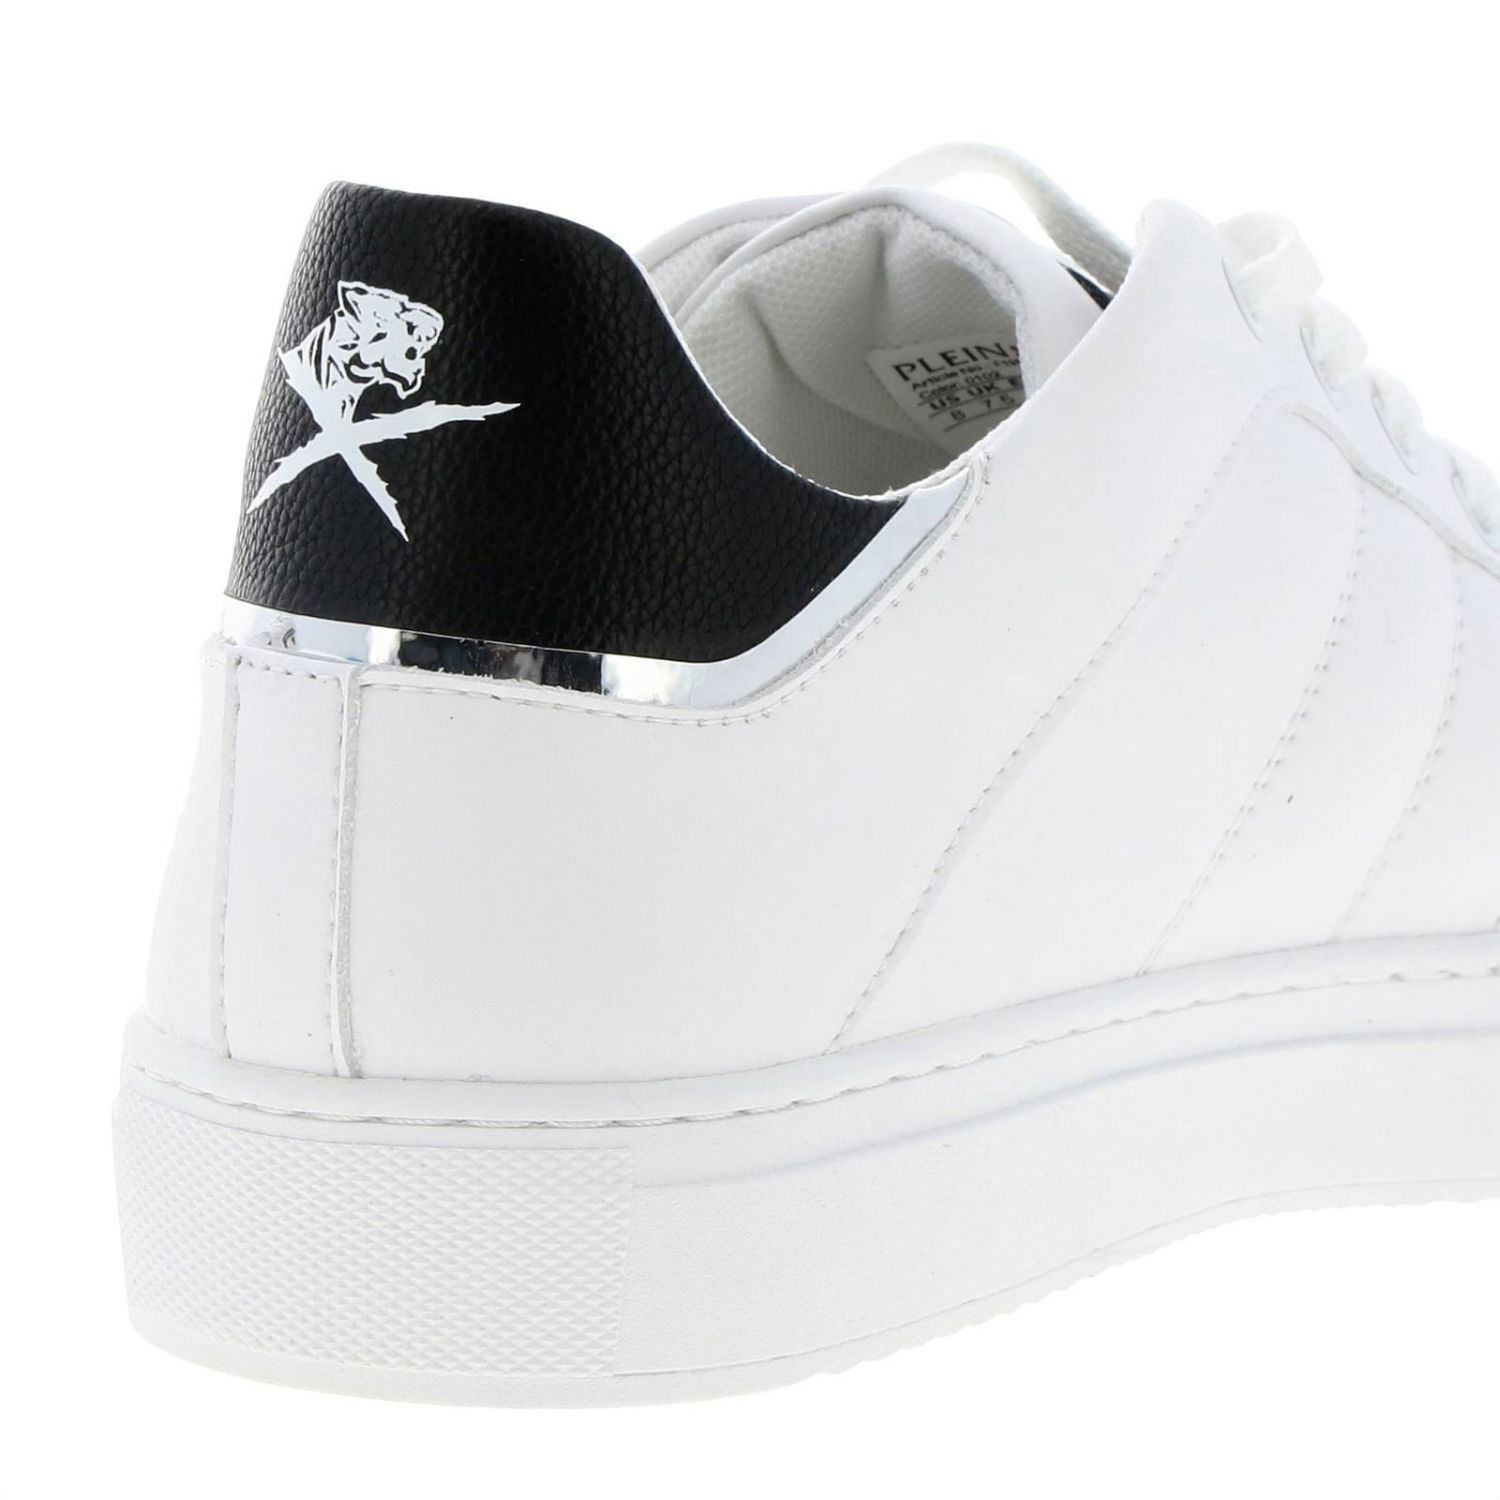 Lo-top Sneakers Cross Tiger Plein Sport in bicolor leather with logo white 4